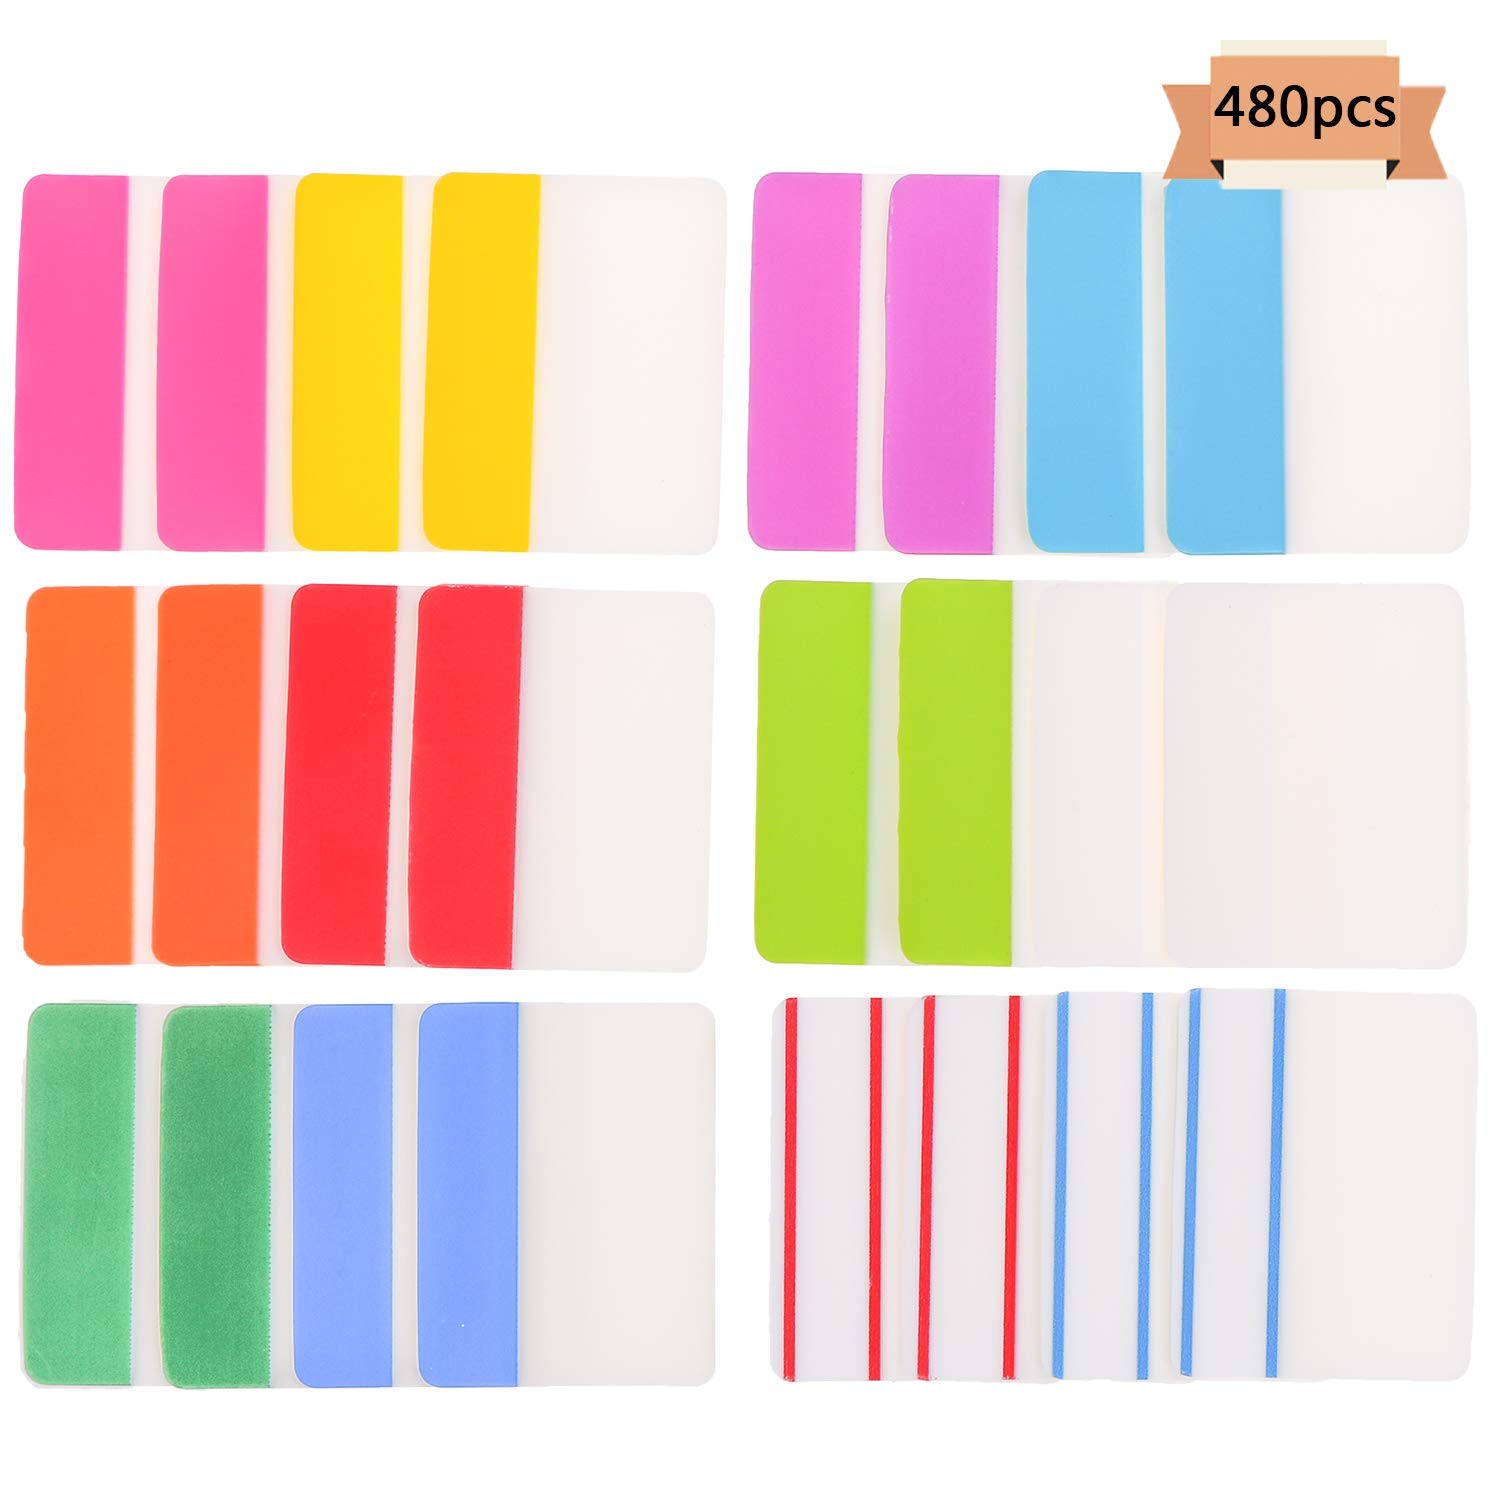 Xgood Tabs 2 inch Index Tabs Assorted Colors Tabs Sticky Page Markers Flag Dispenser 12 Colors 480 Pieces for Notes,Books,File Folders